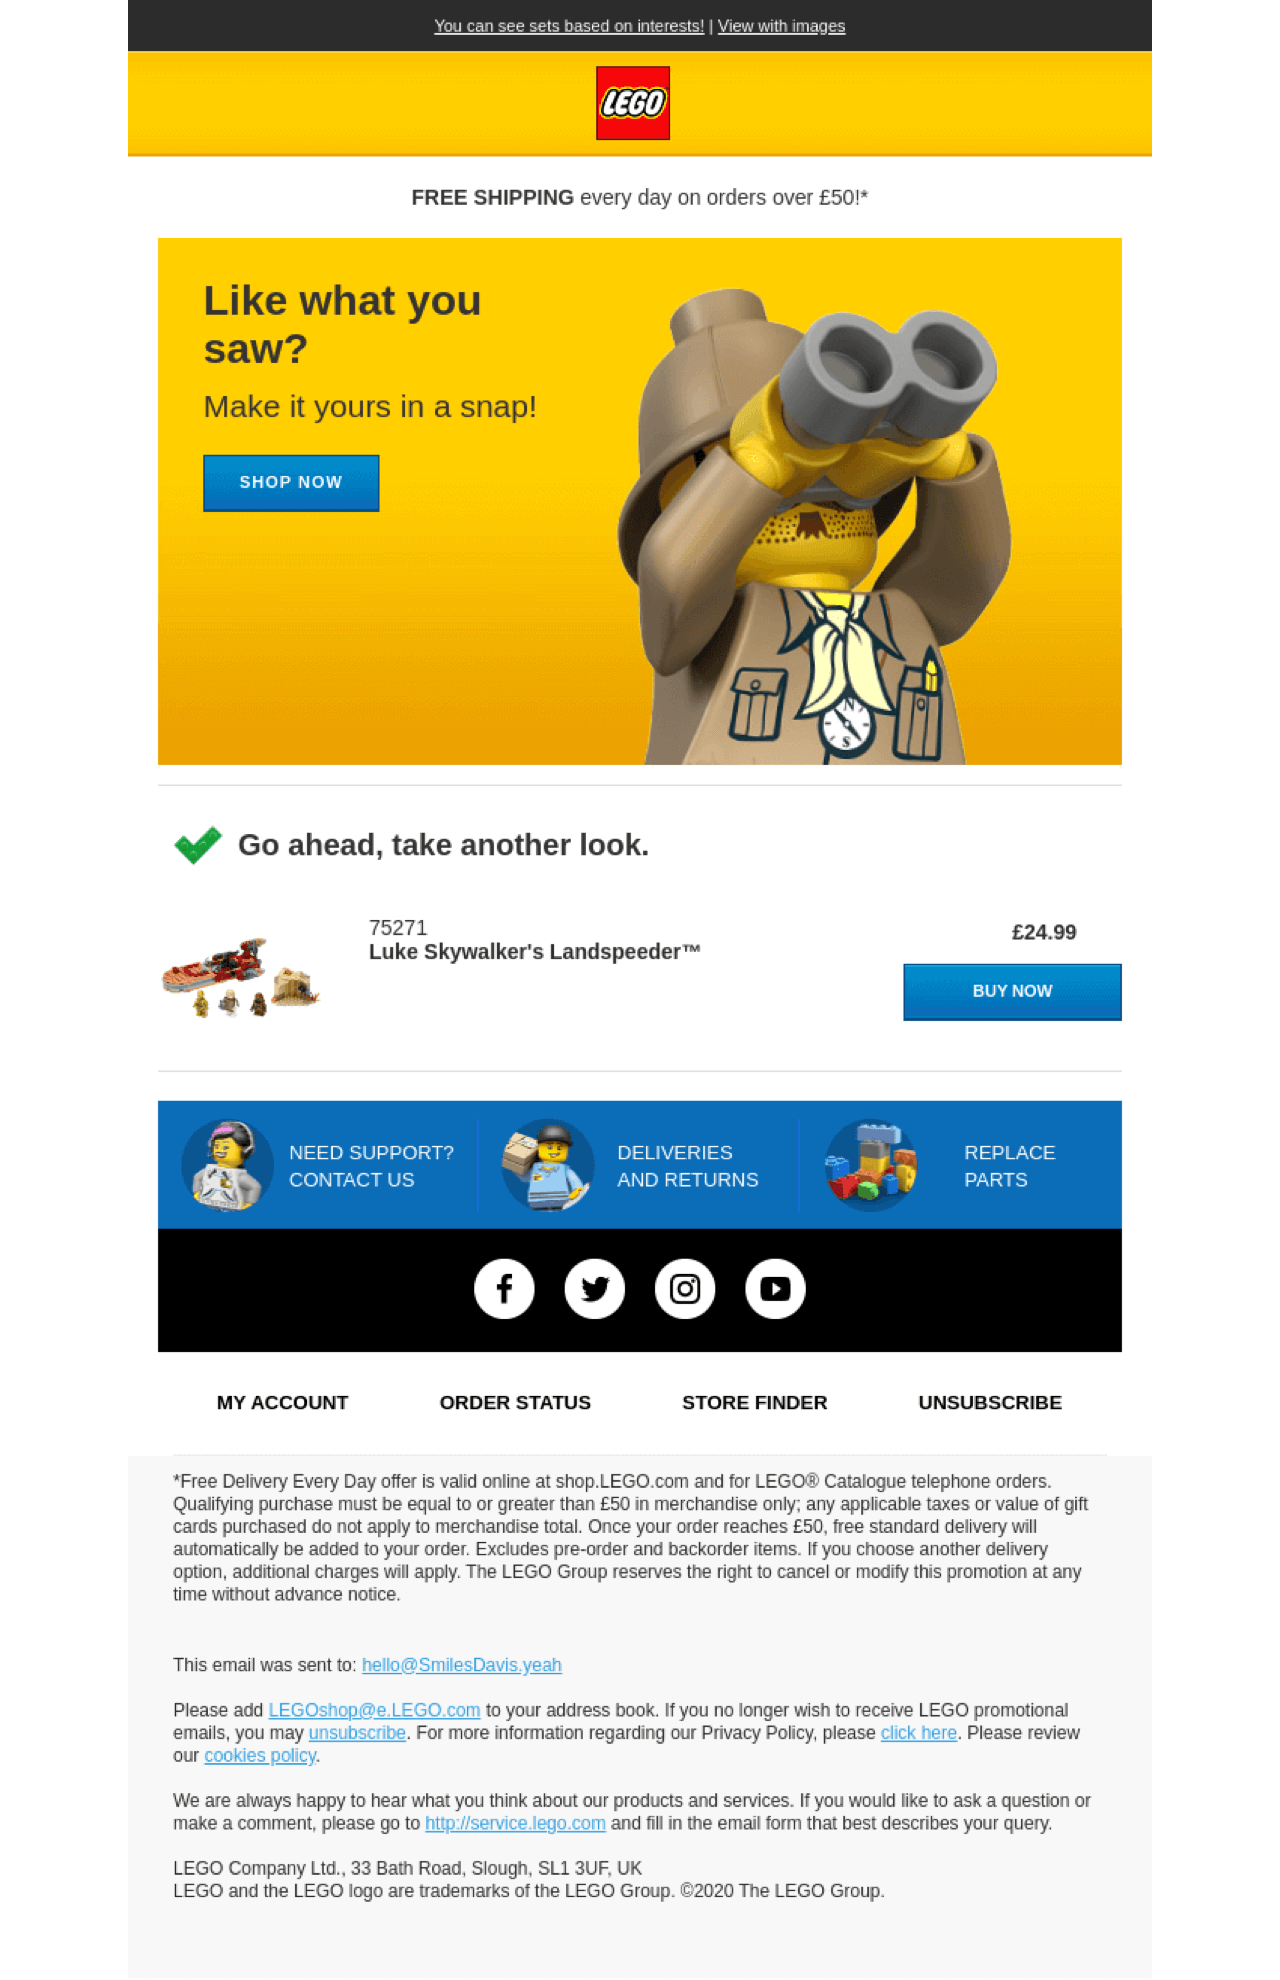 Abandoned cart email from Lego is a combination of attractive design, fun play on words, and related images